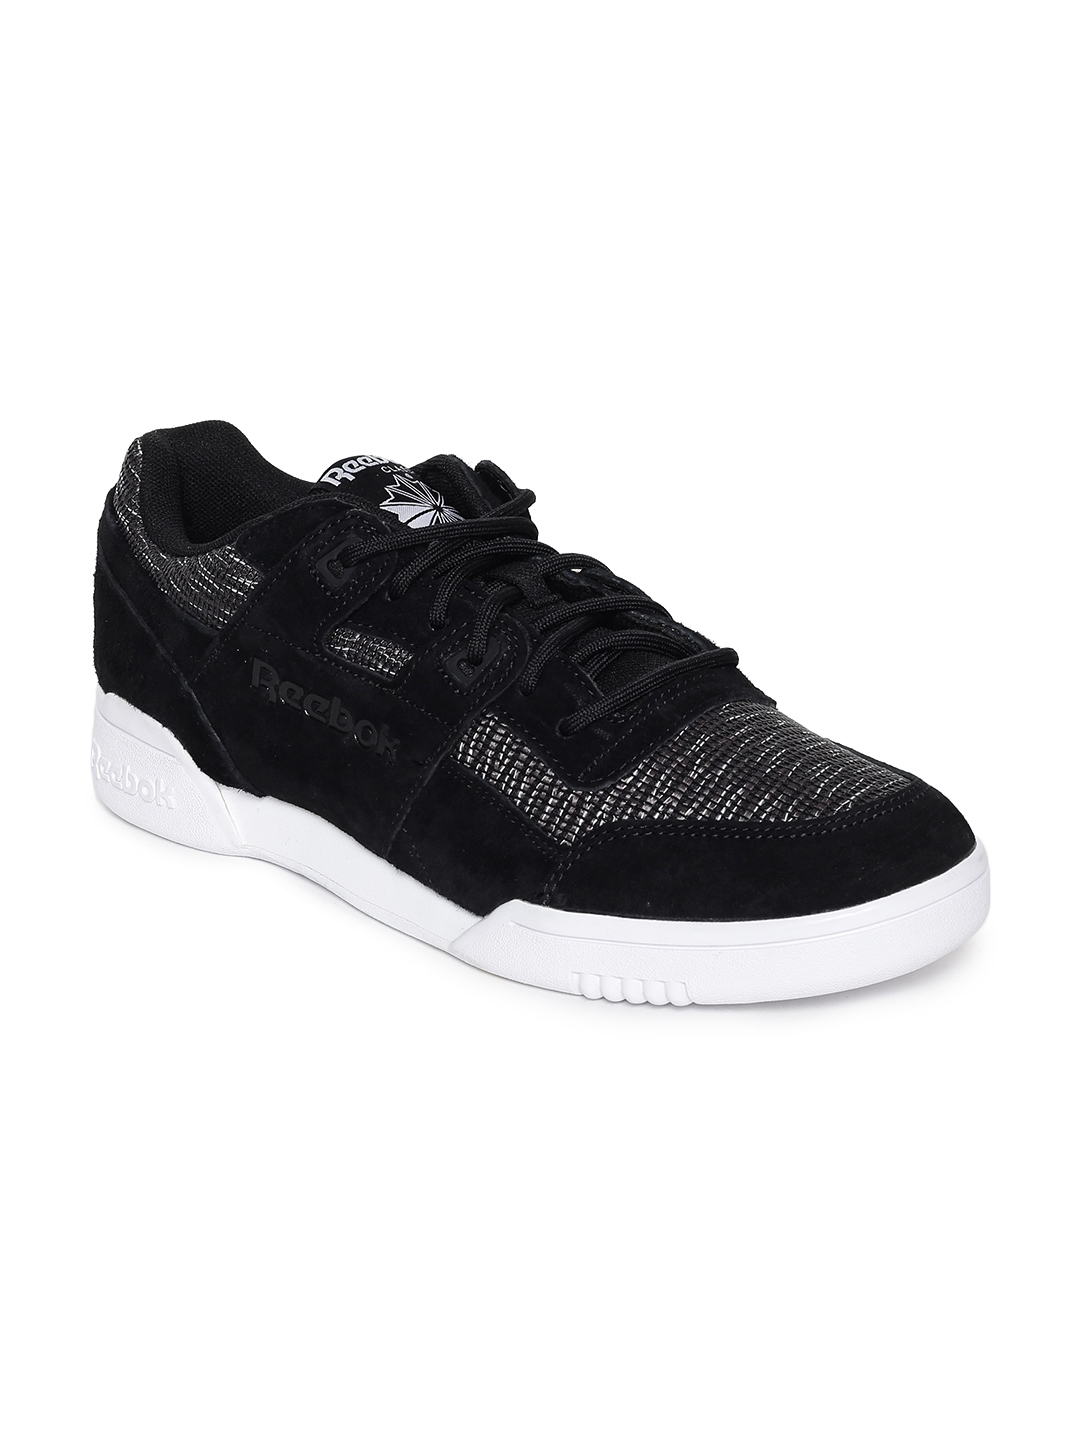 ad29a680195c Buy Reebok Classic Men Black WORKOUT PLUS FW Sneakers - Casual Shoes ...